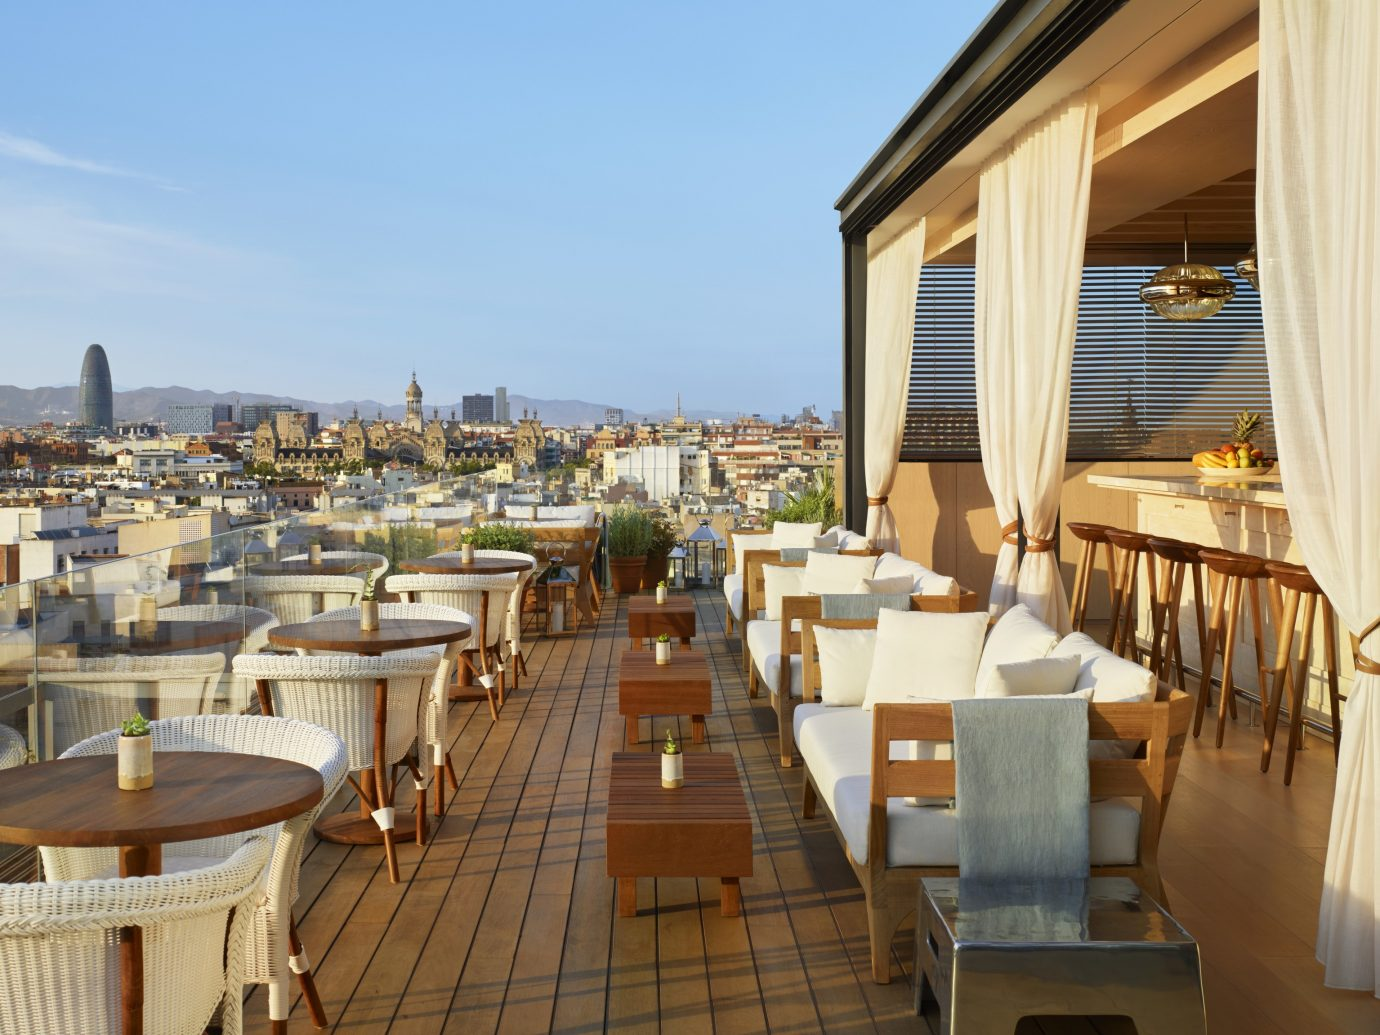 Outdoor dining at the Barcelona Edition